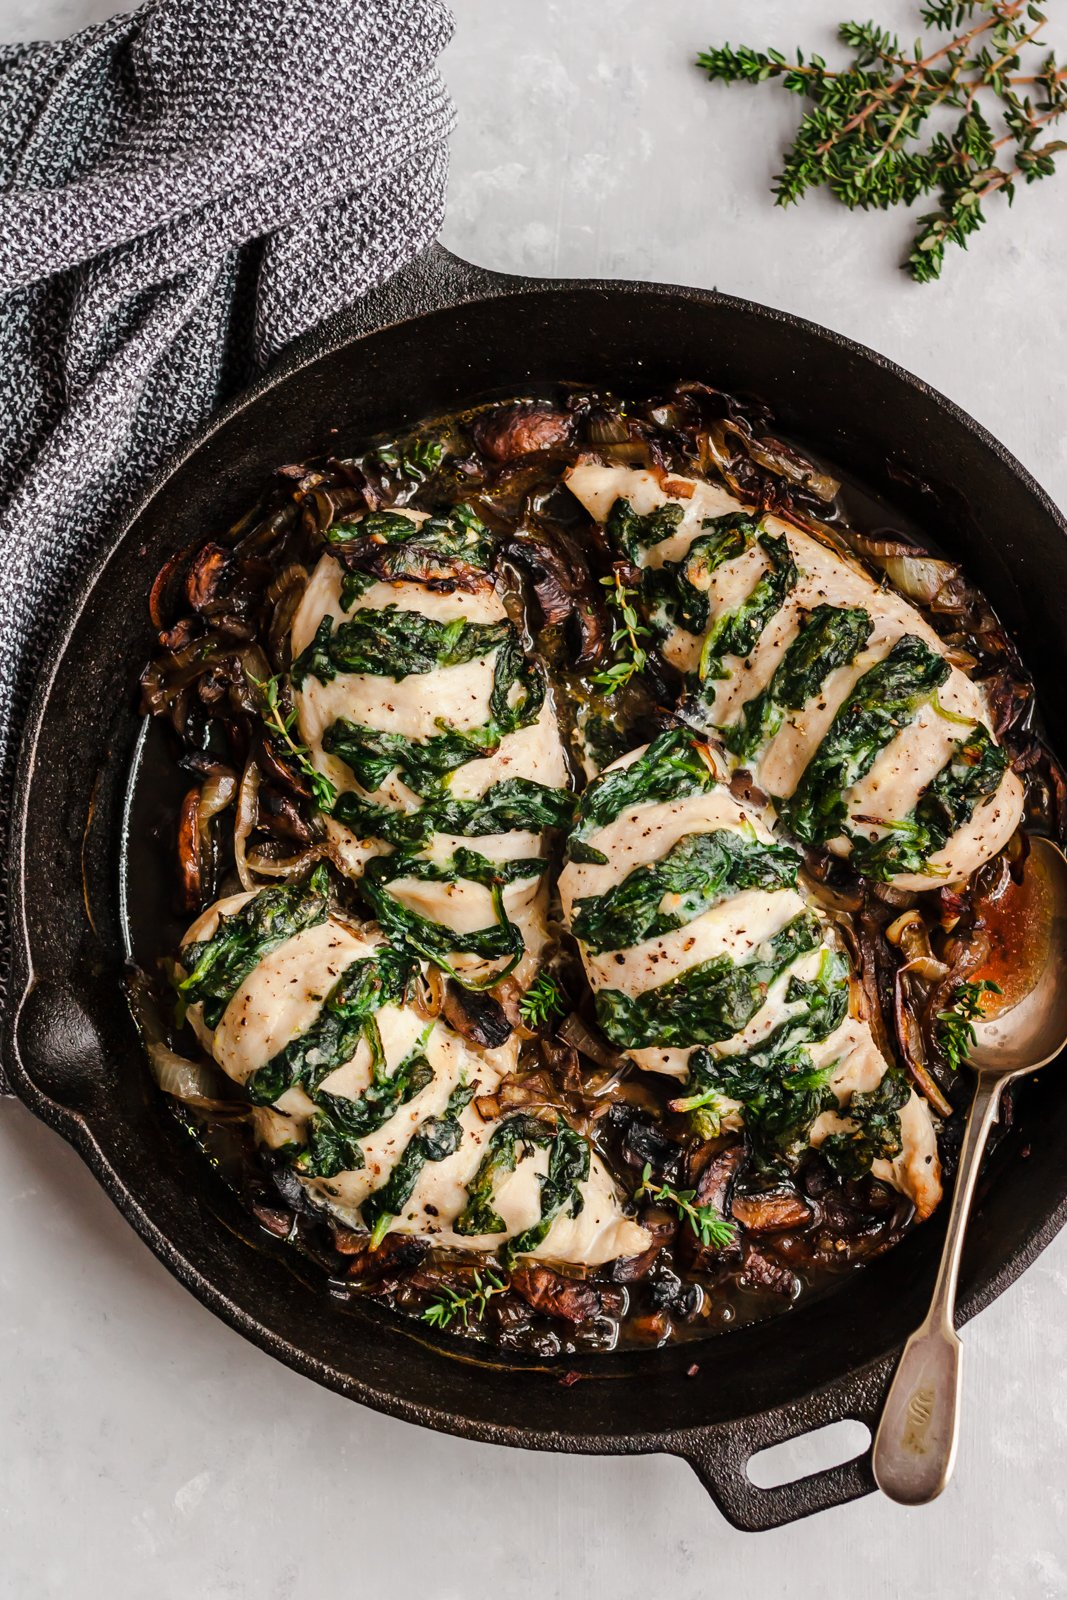 goat cheese and spinach stuffed chicken breast in a skillet